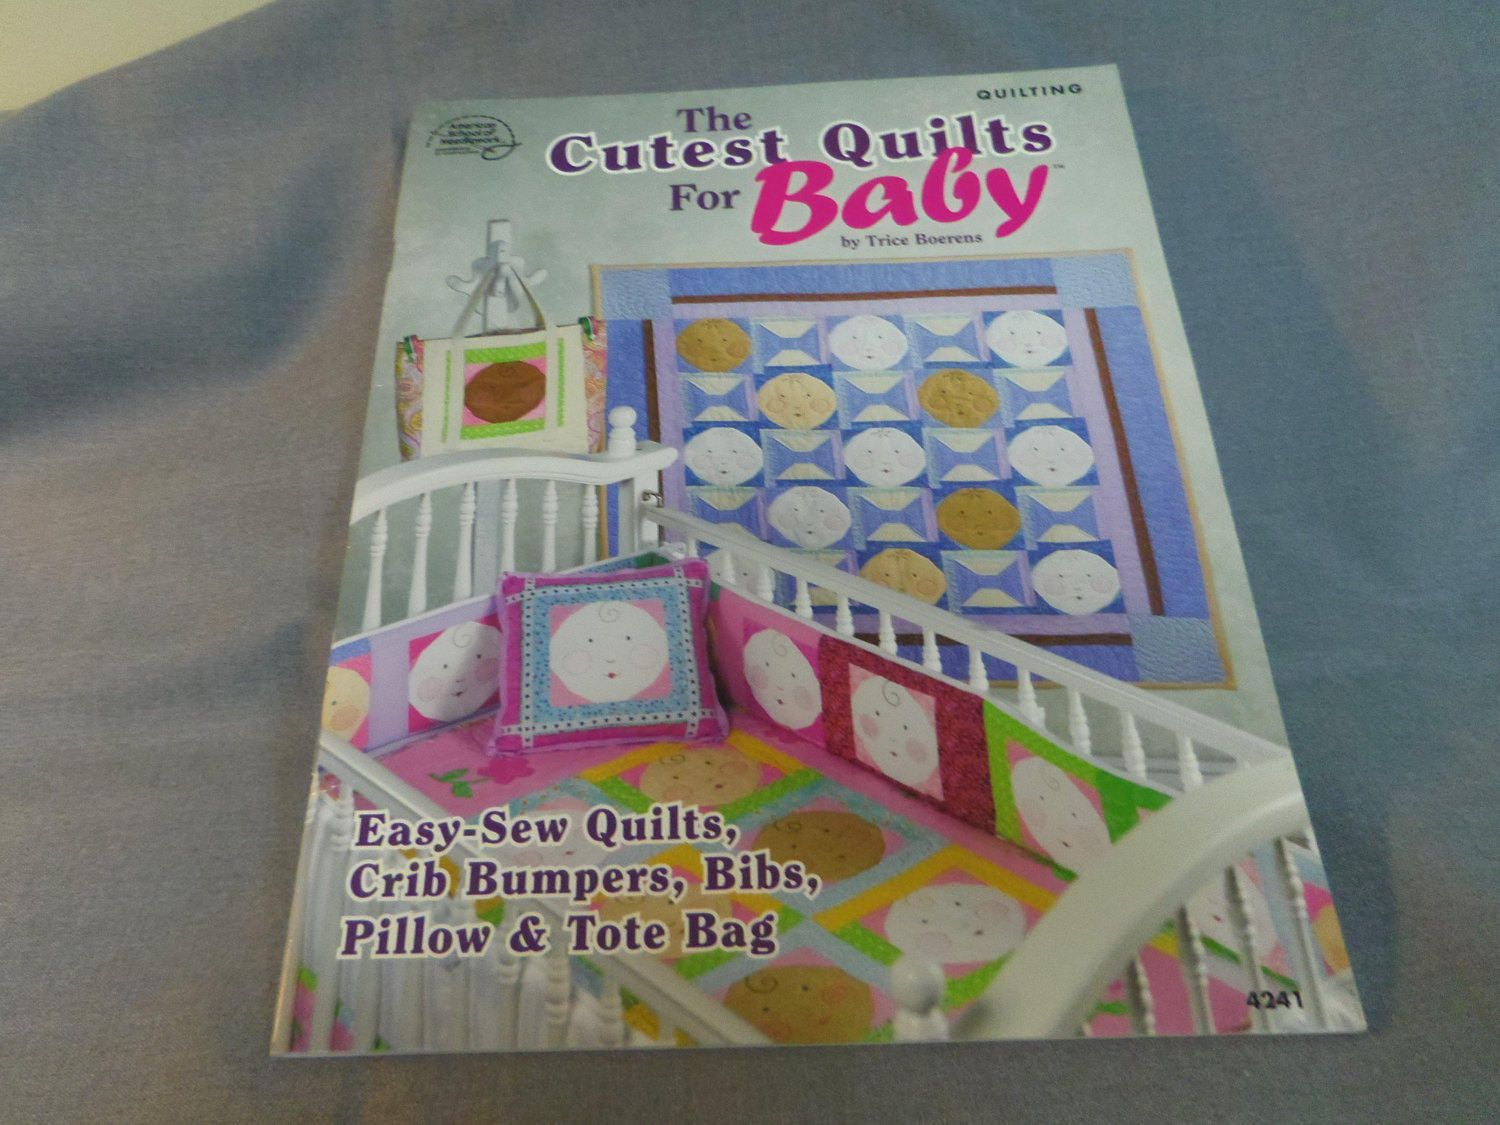 Cutest Quilts for Baby Quilting Patterns, Trice Boerens, Quilts, Crib Bumpers, Bibs, Pillow, Tote Bag, 2007 #bibsforbaby